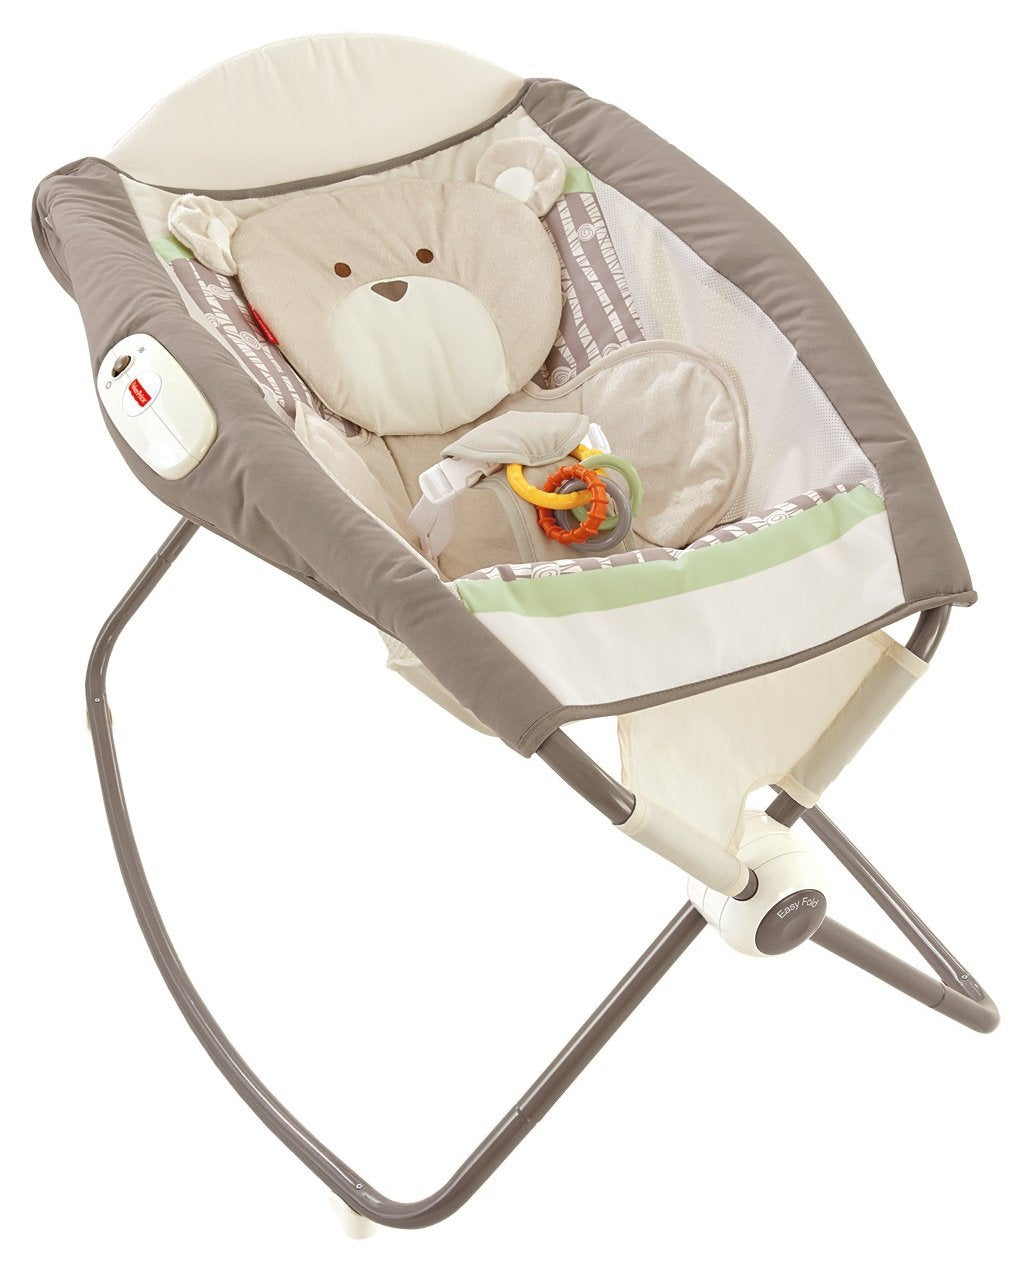 safety sleeper and play rock fisher price pin newborn baby gear favorite n